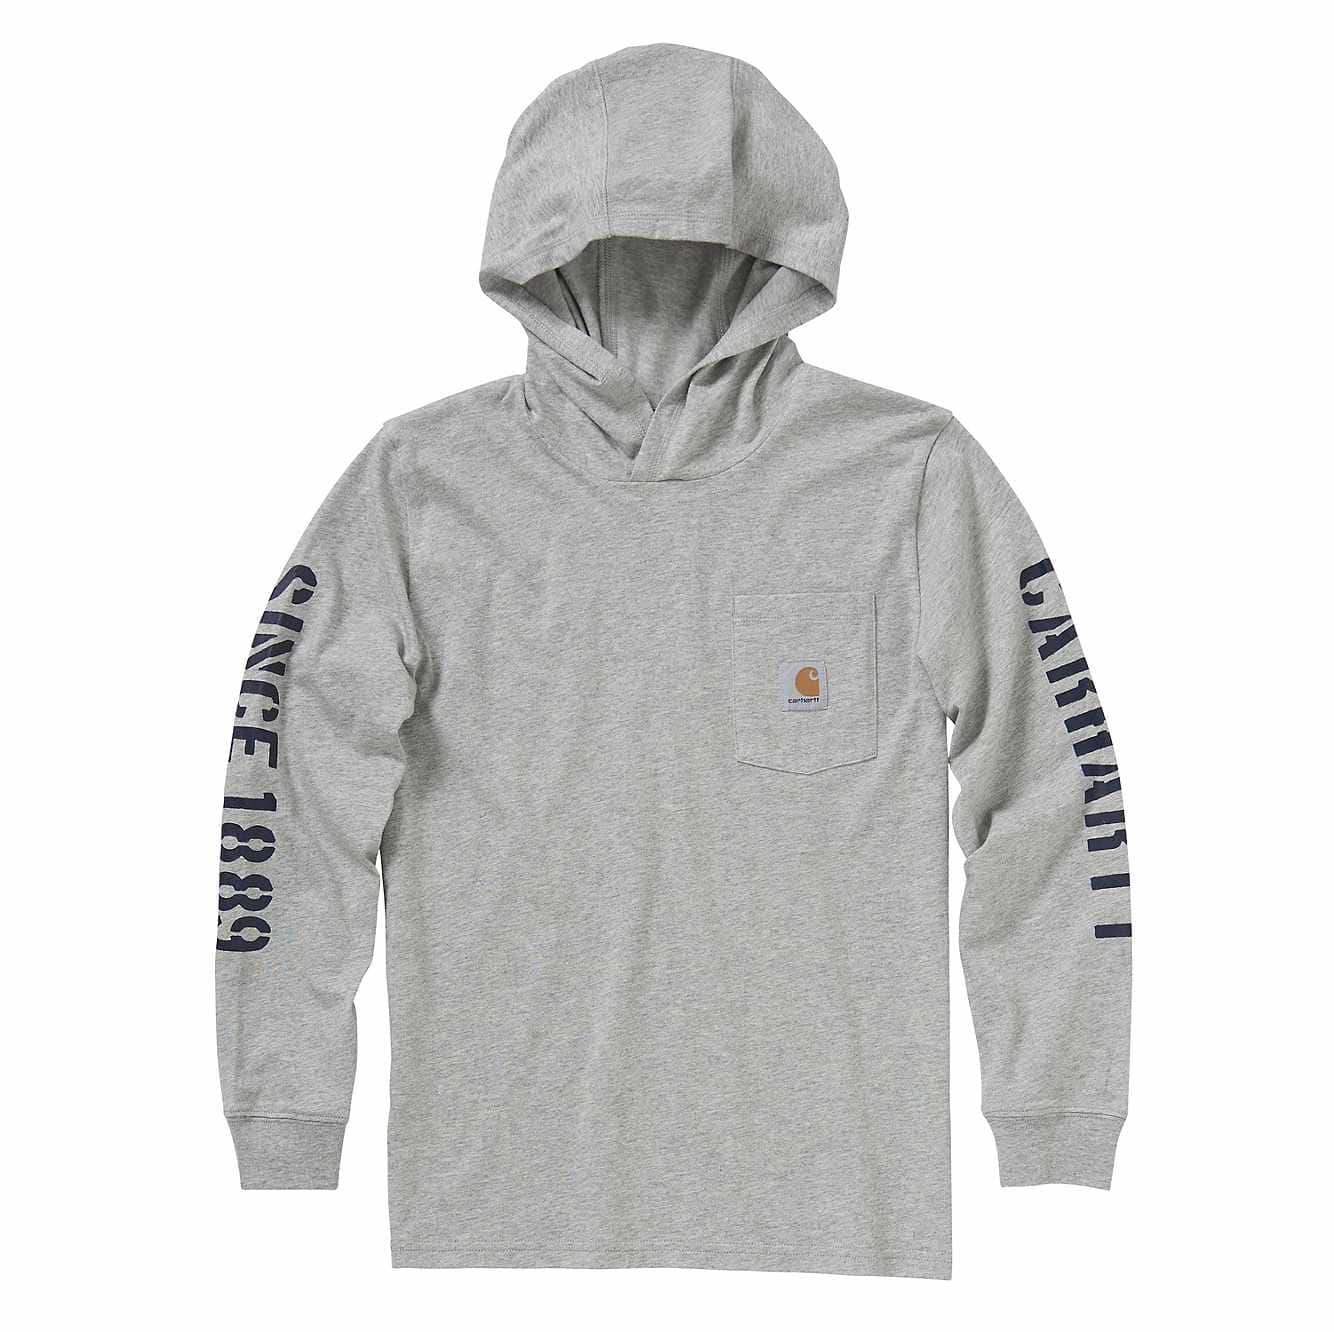 Picture of Long-Sleeve Hooded Pocket Tee in Grey Heather